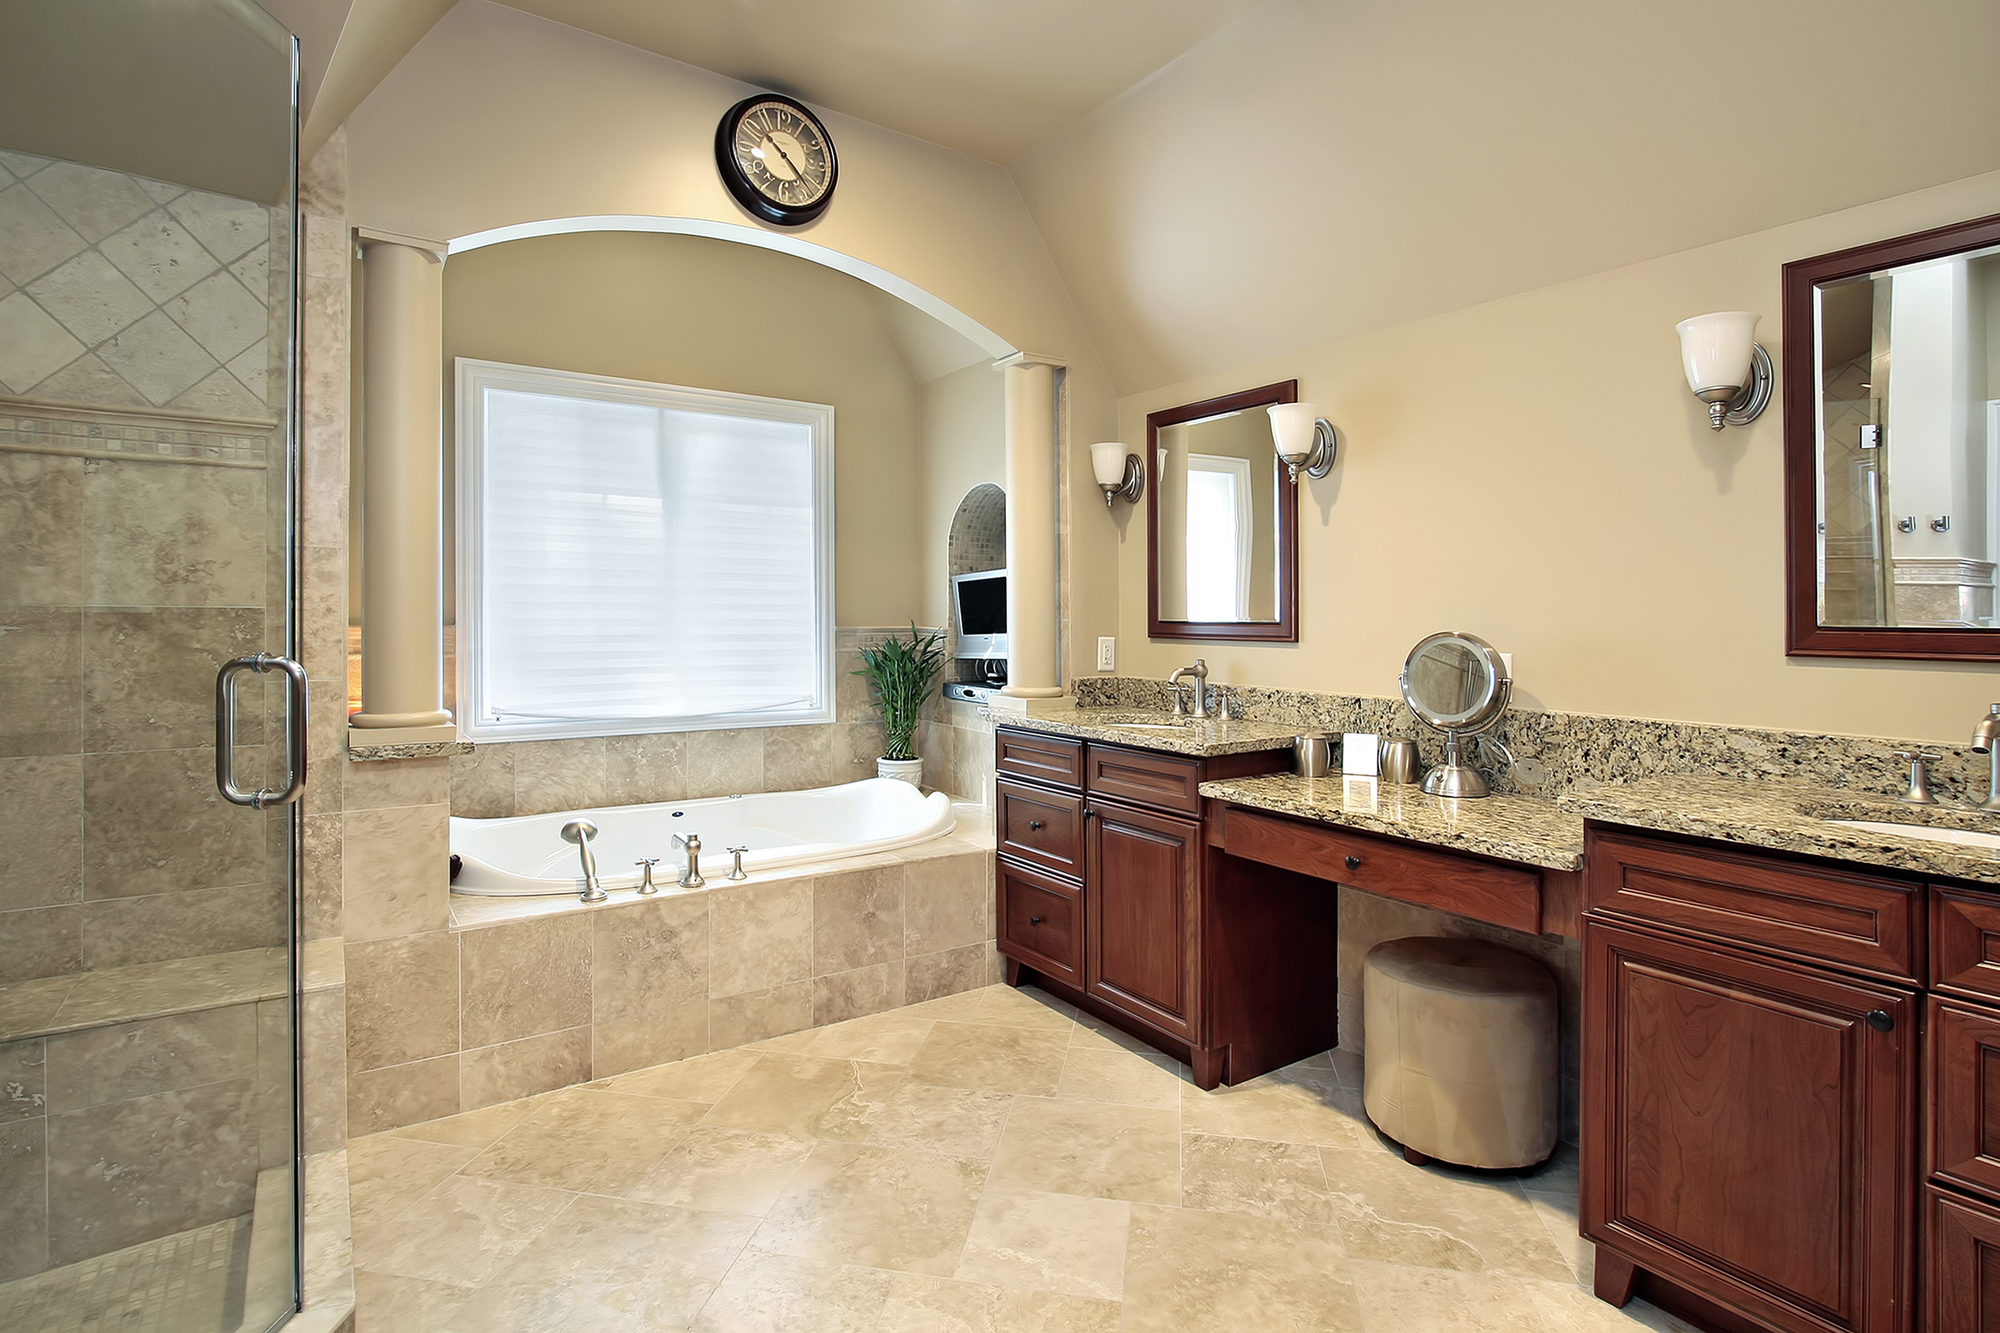 3 Most Durable Materials For Your Bathroom Countertops